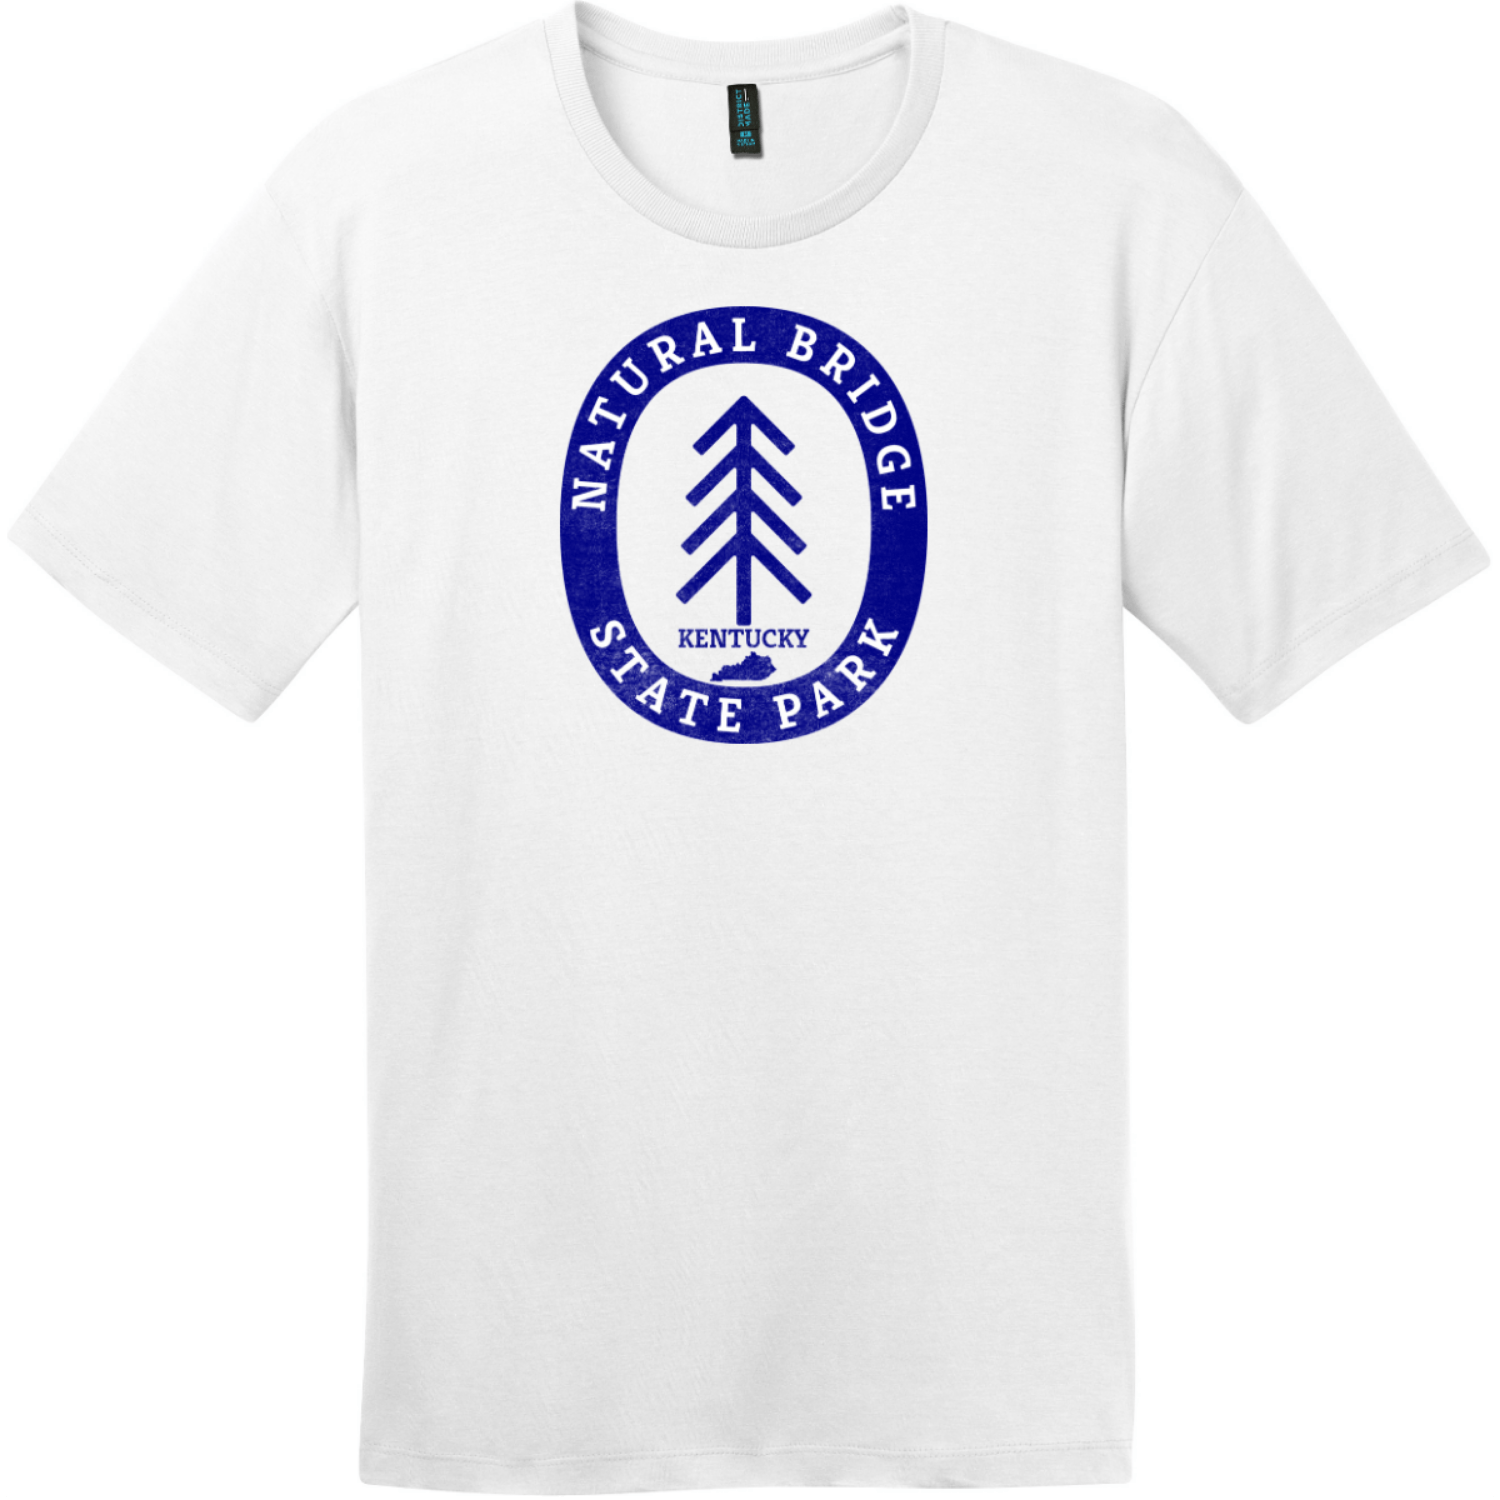 Natural Bridge State Park T-Shirt Bright White District Perfect Weight Tee DT104